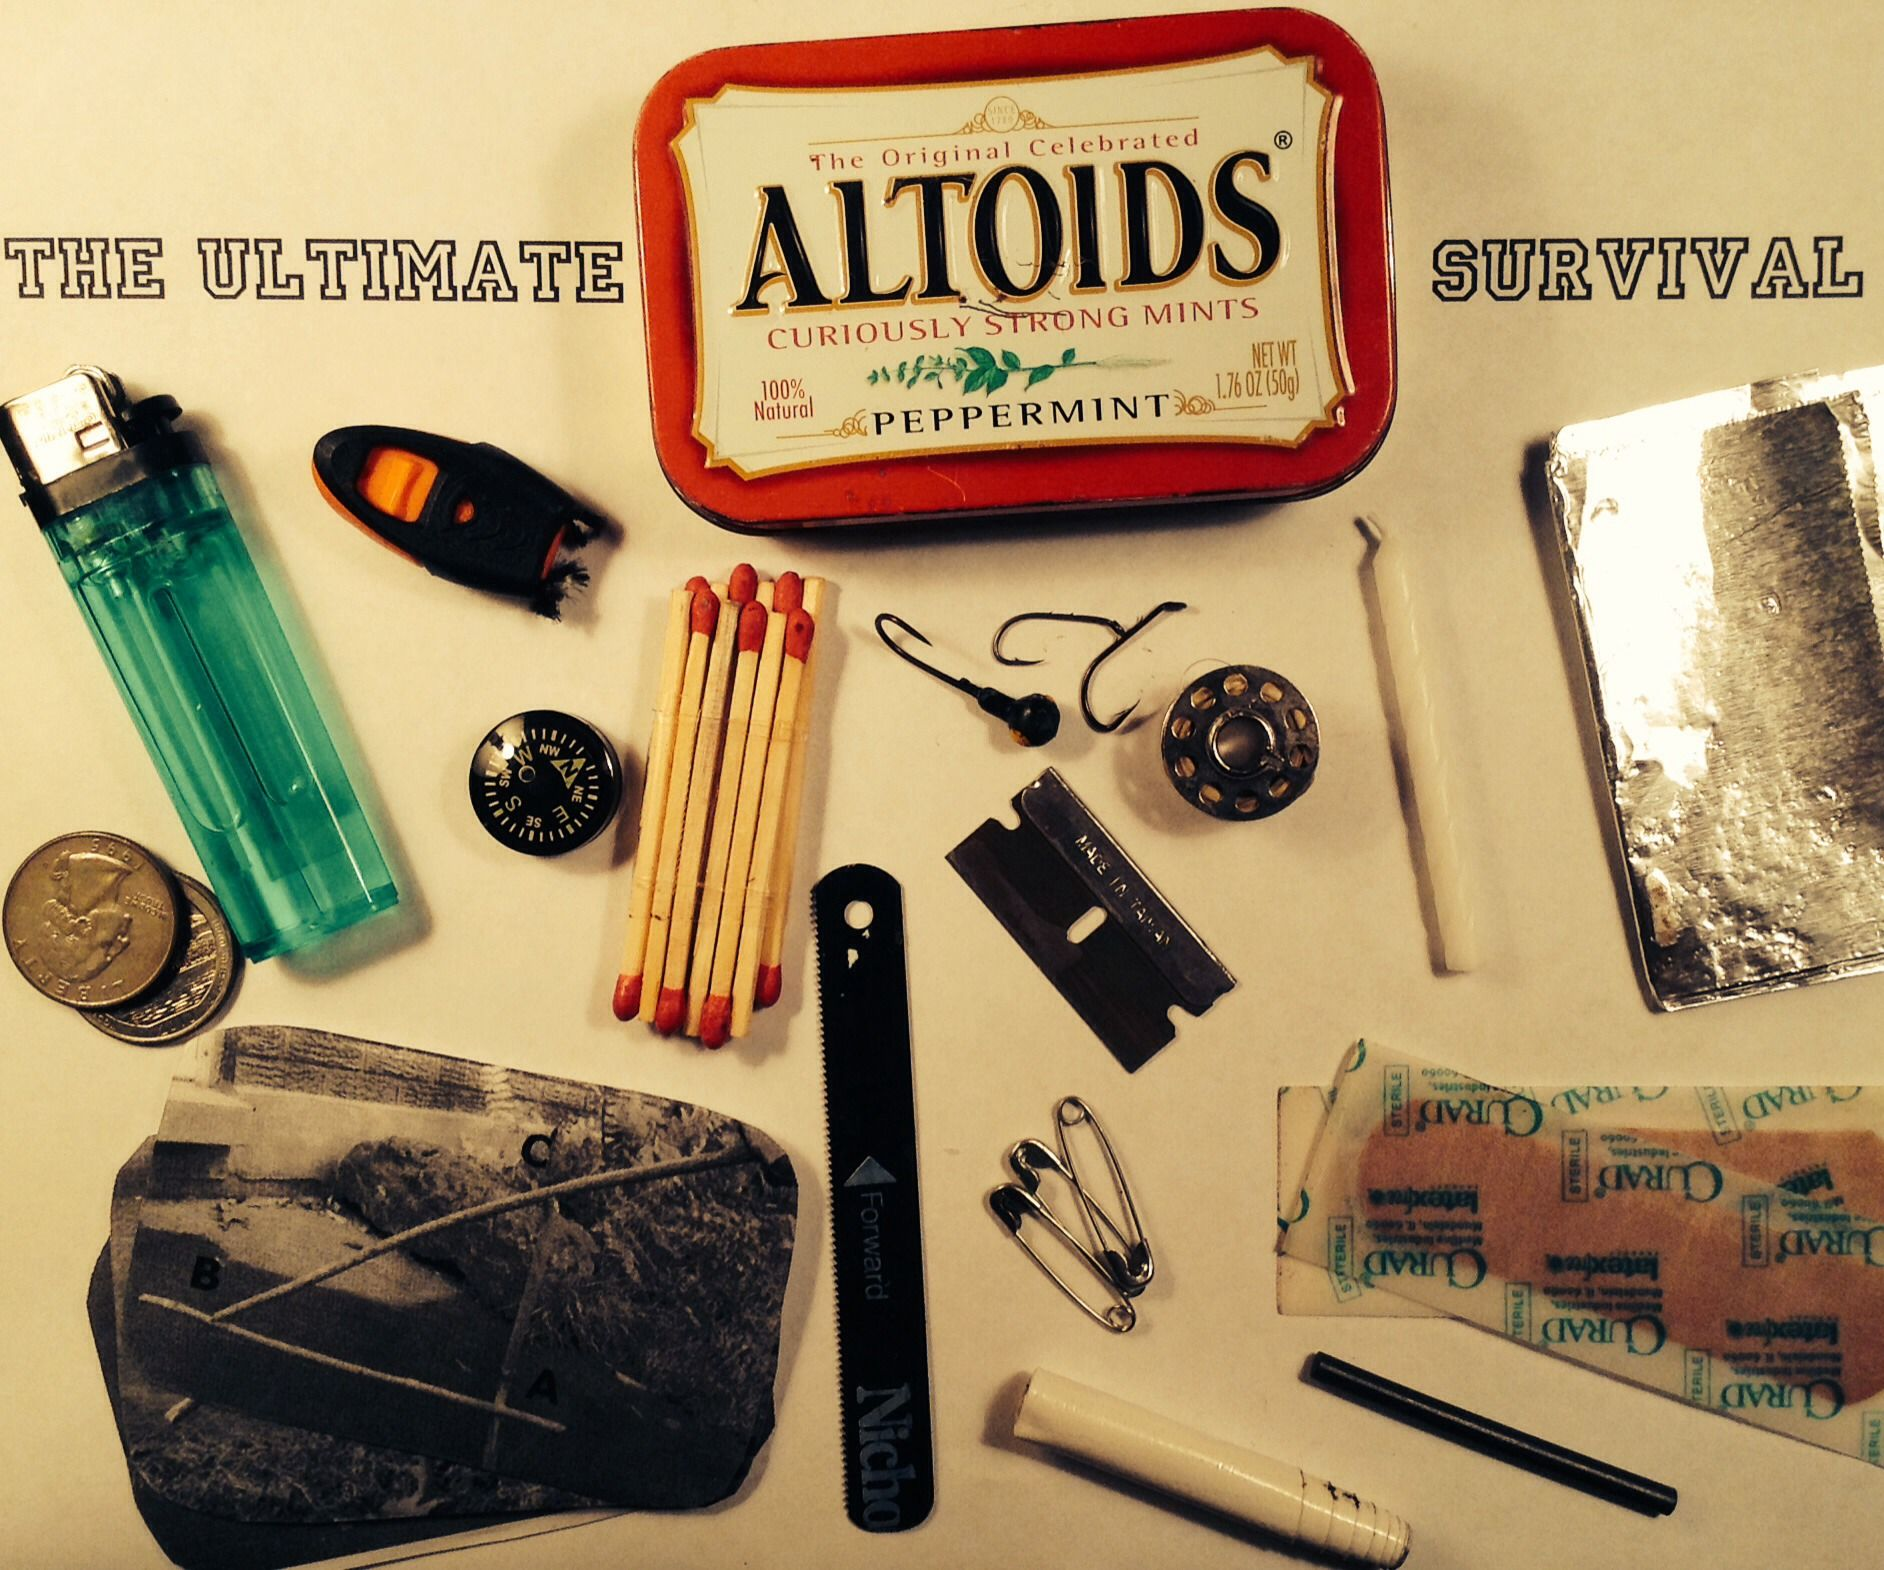 The Ultimate Altoids Survival Kit